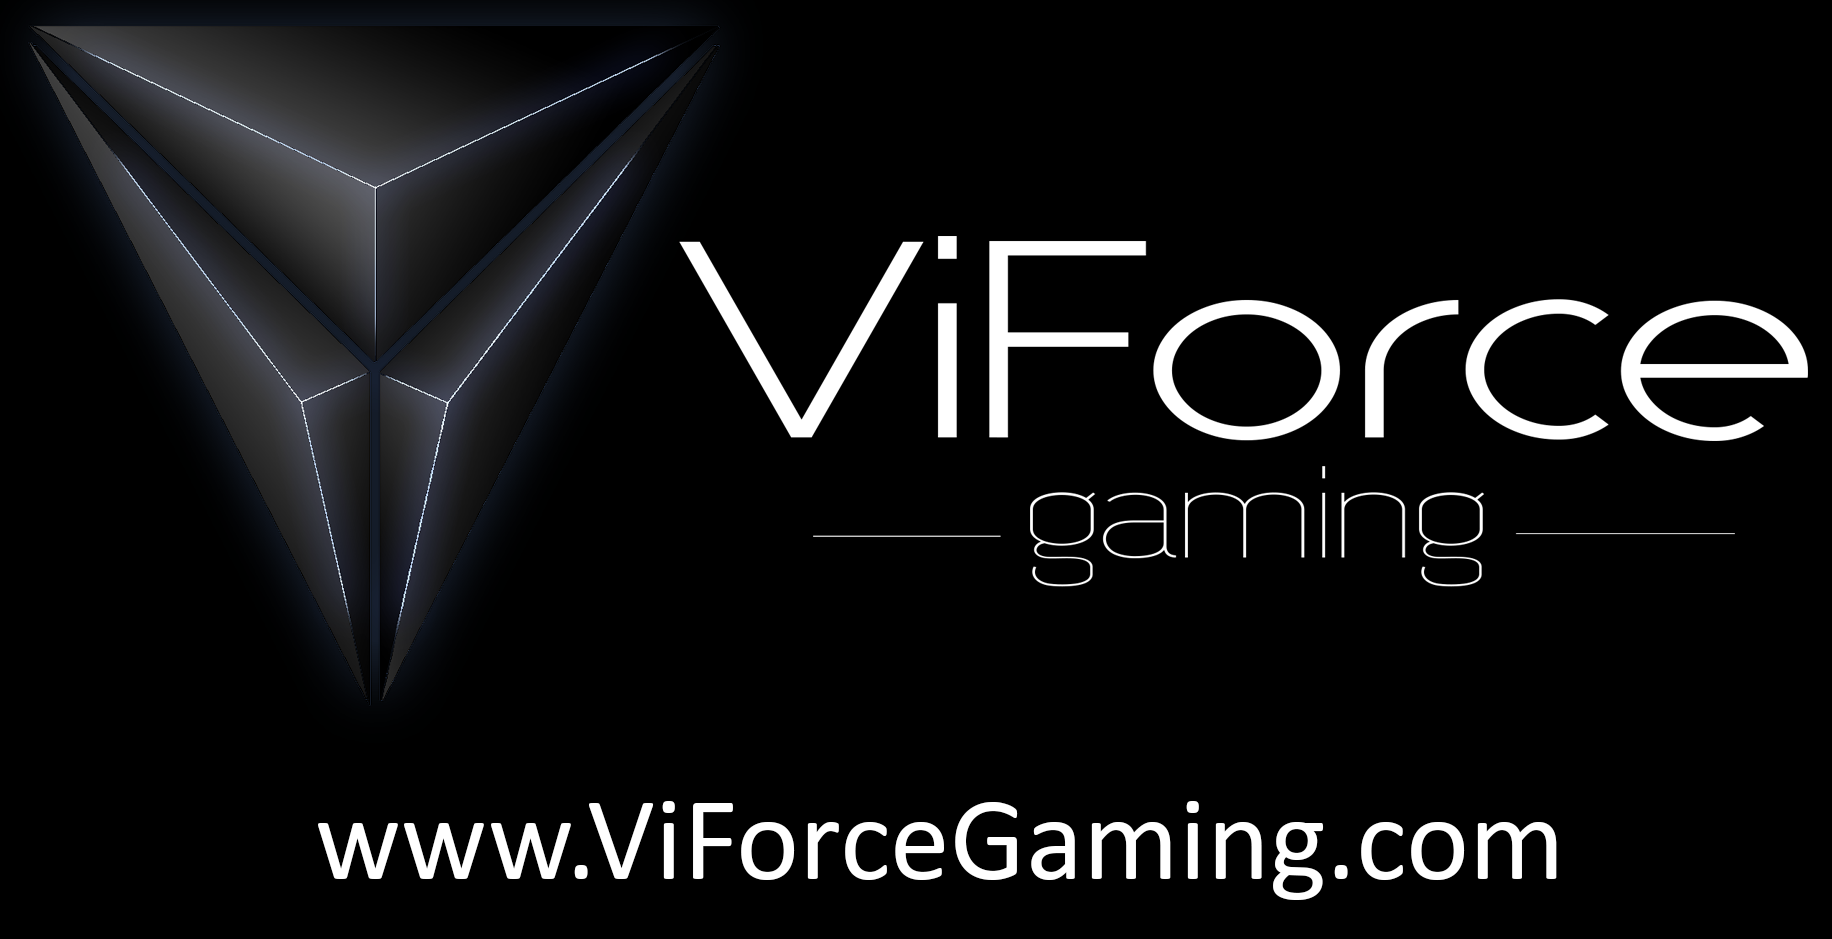 ViForce Gaming